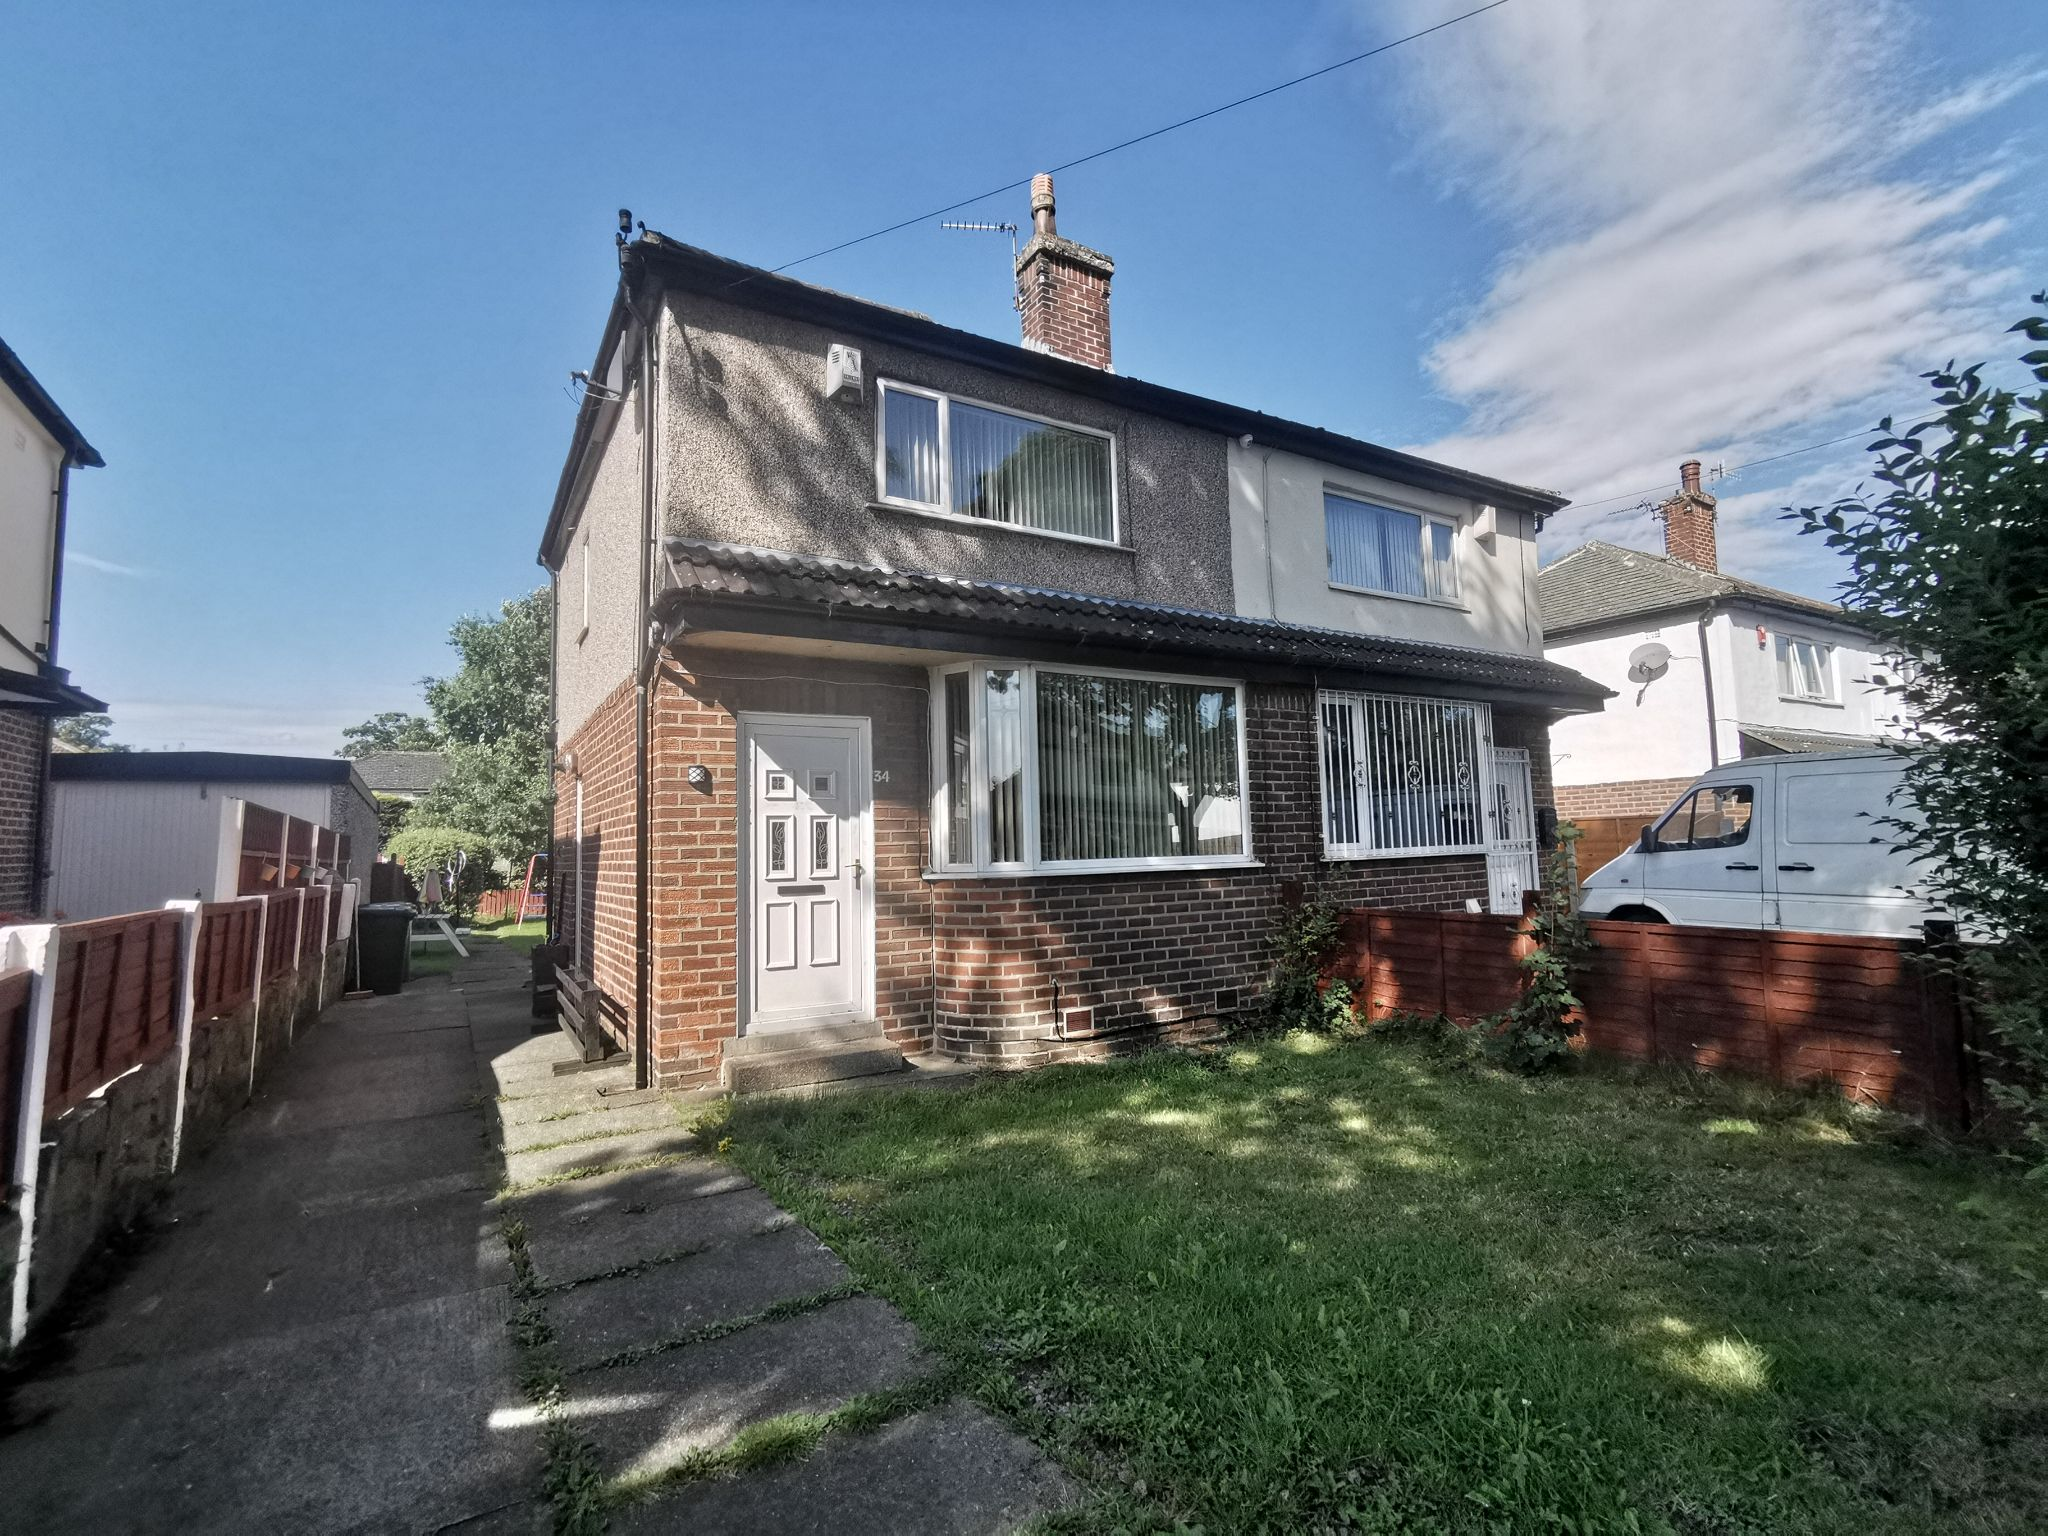 2 bedroom semi-detached house For Sale in Bradford - Photograph 15.